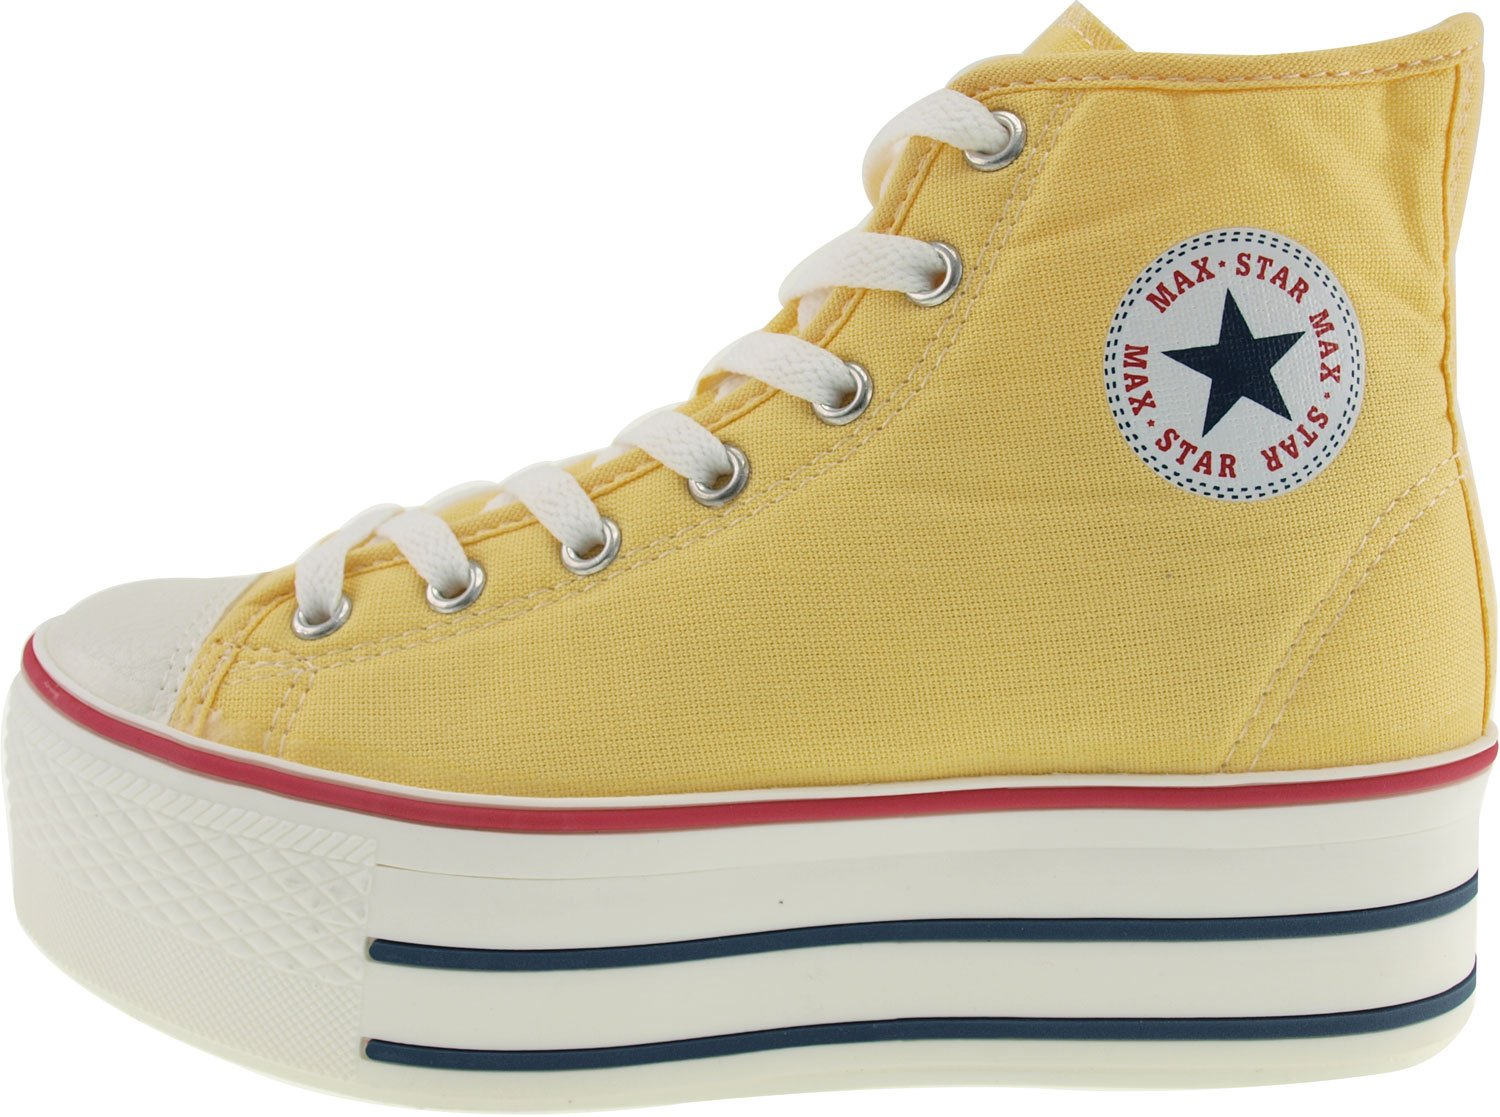 Maxstar Women's C50 7 Holes Zipper Platform Canvas High Top Sneakers B00CHVUVWM 8.5 B(M) US|Yellow